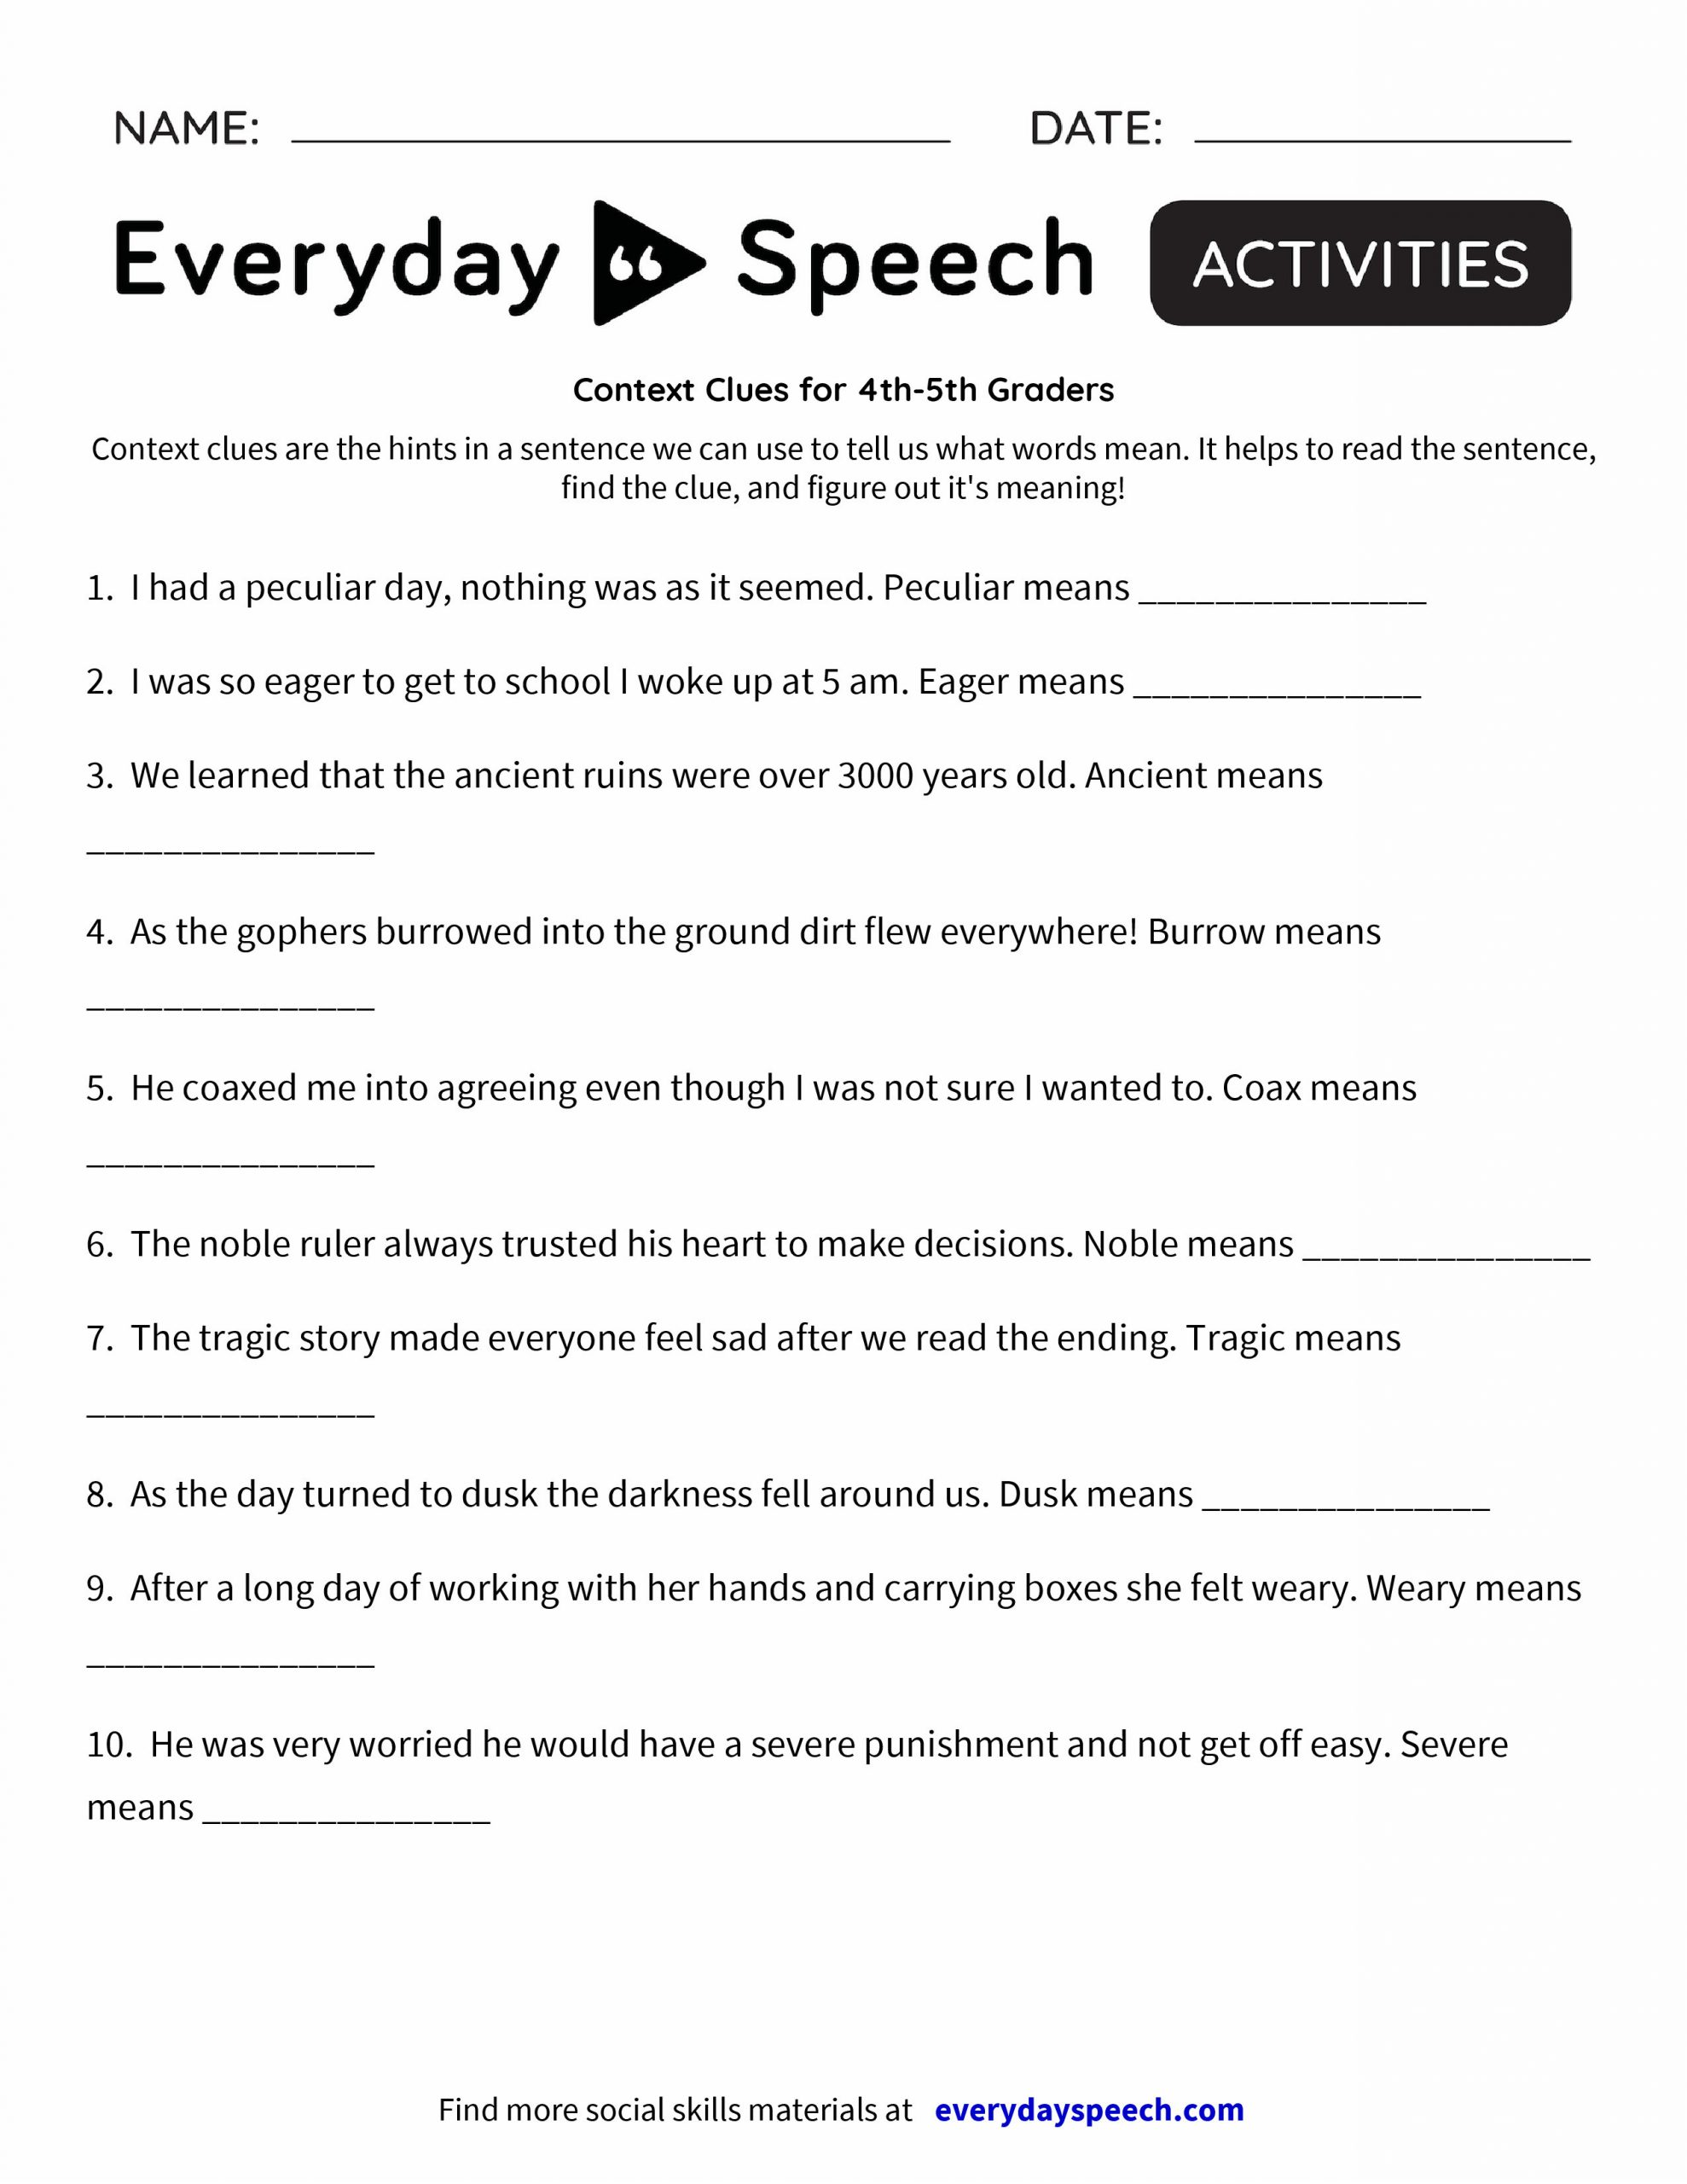 Context Clues 5th Grade Worksheets Free Context Clues Worksheets